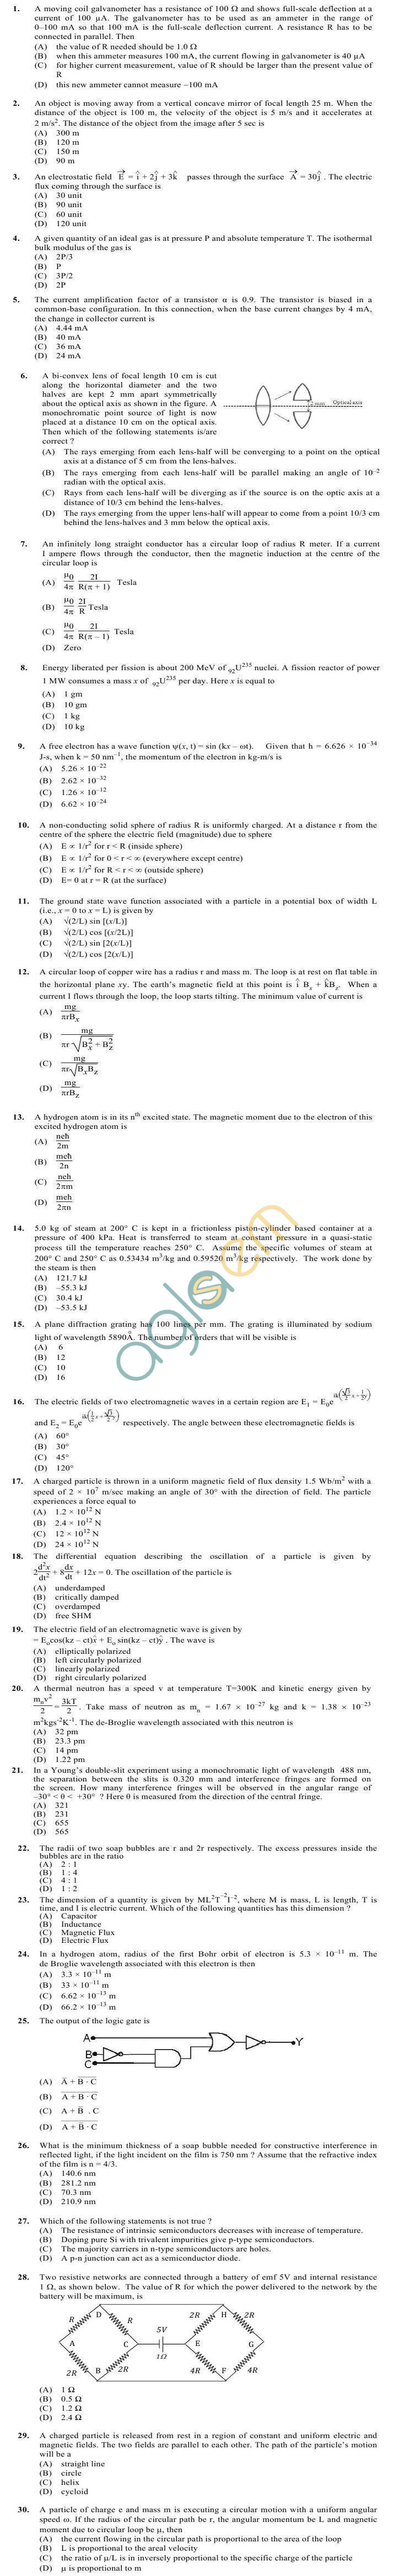 OJEE 2013 Question Paper with Answers LE BSC PCB